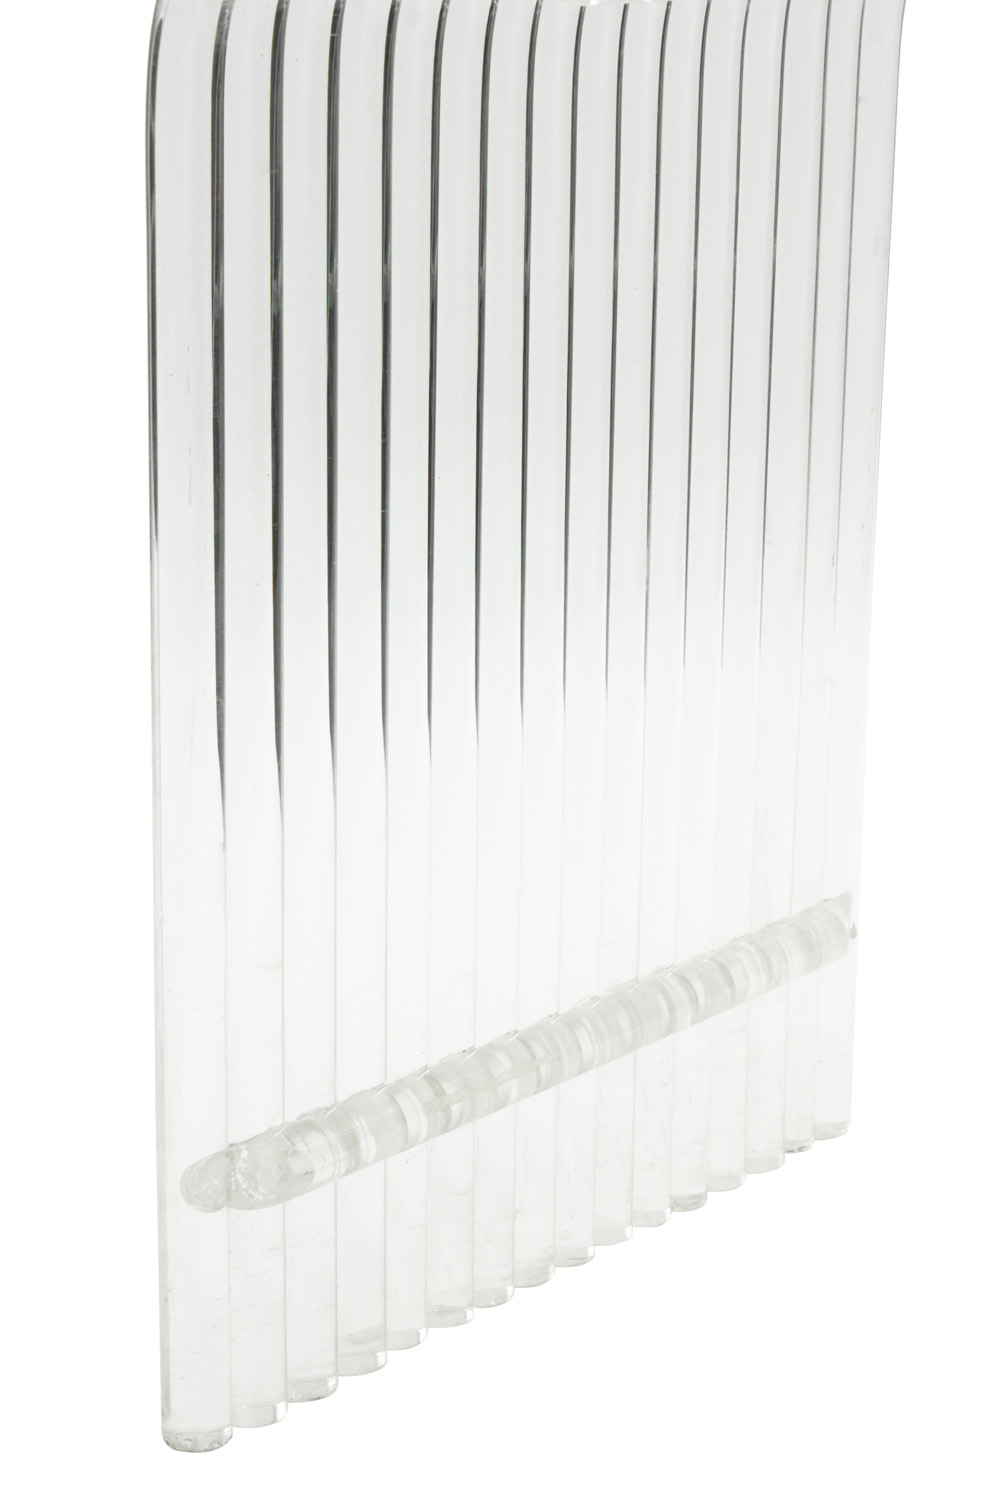 70s 35 lucite waterfall rods endtable142 detail2 hires.jpg